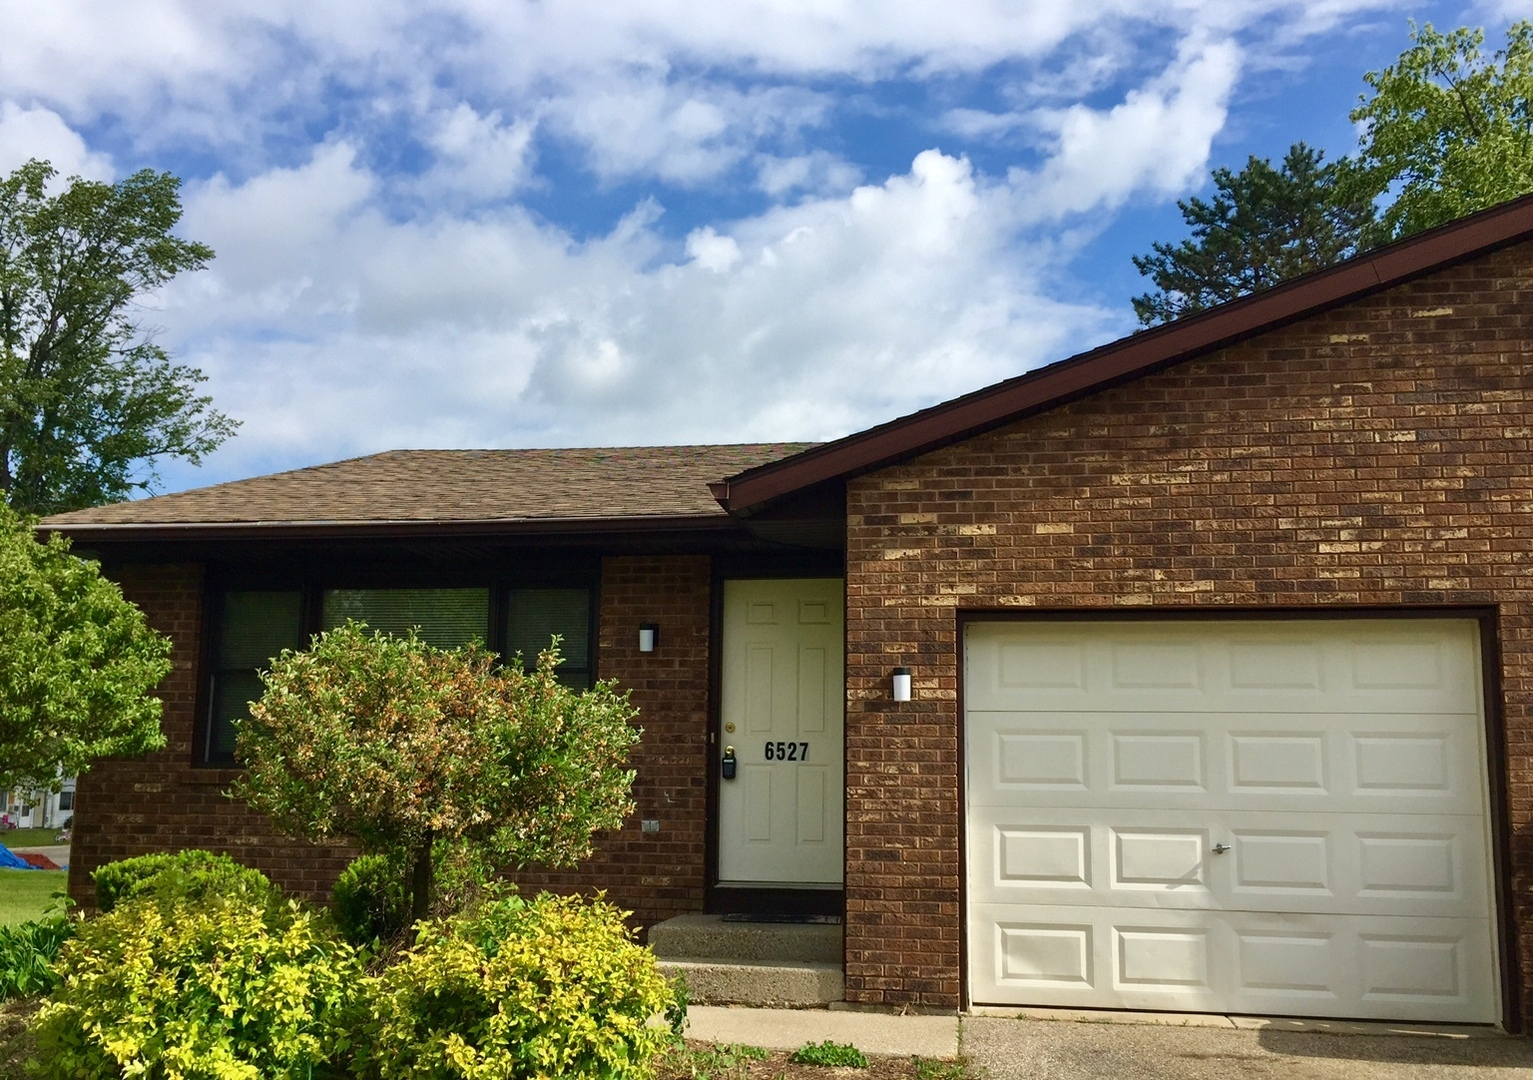 House for Rent in Allendale